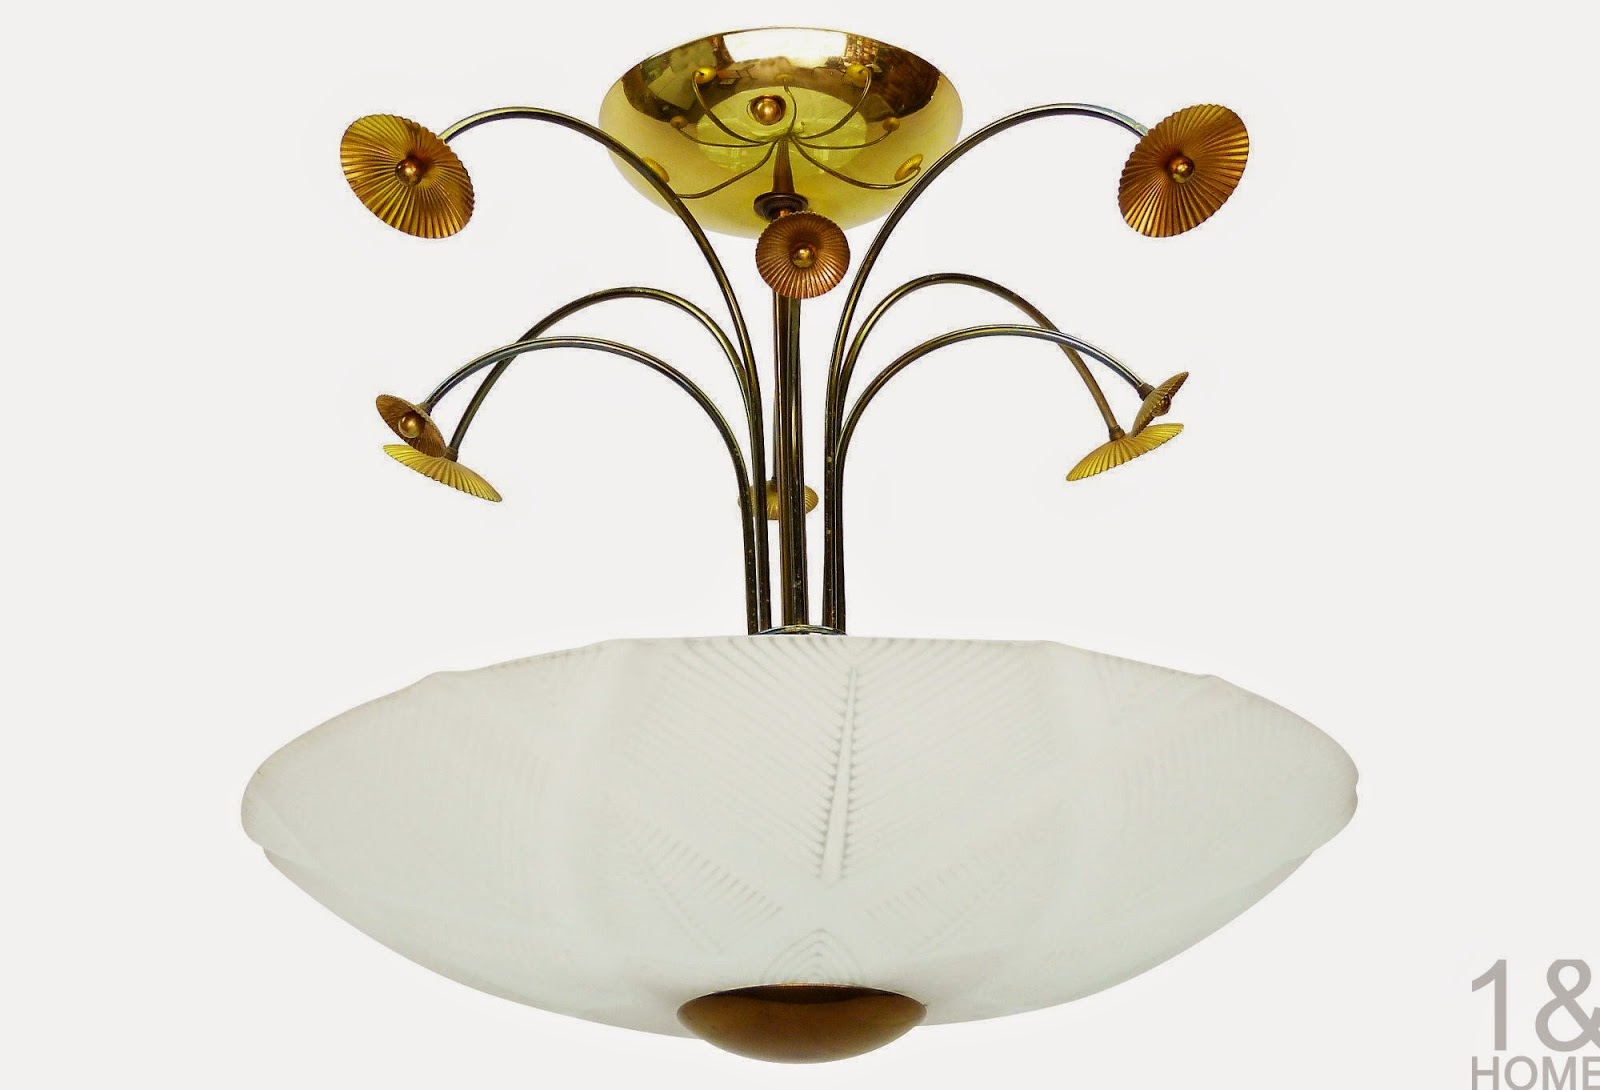 brass poppy ceiling light frosted glass shade Halcolite mid-century vintage retro atomic